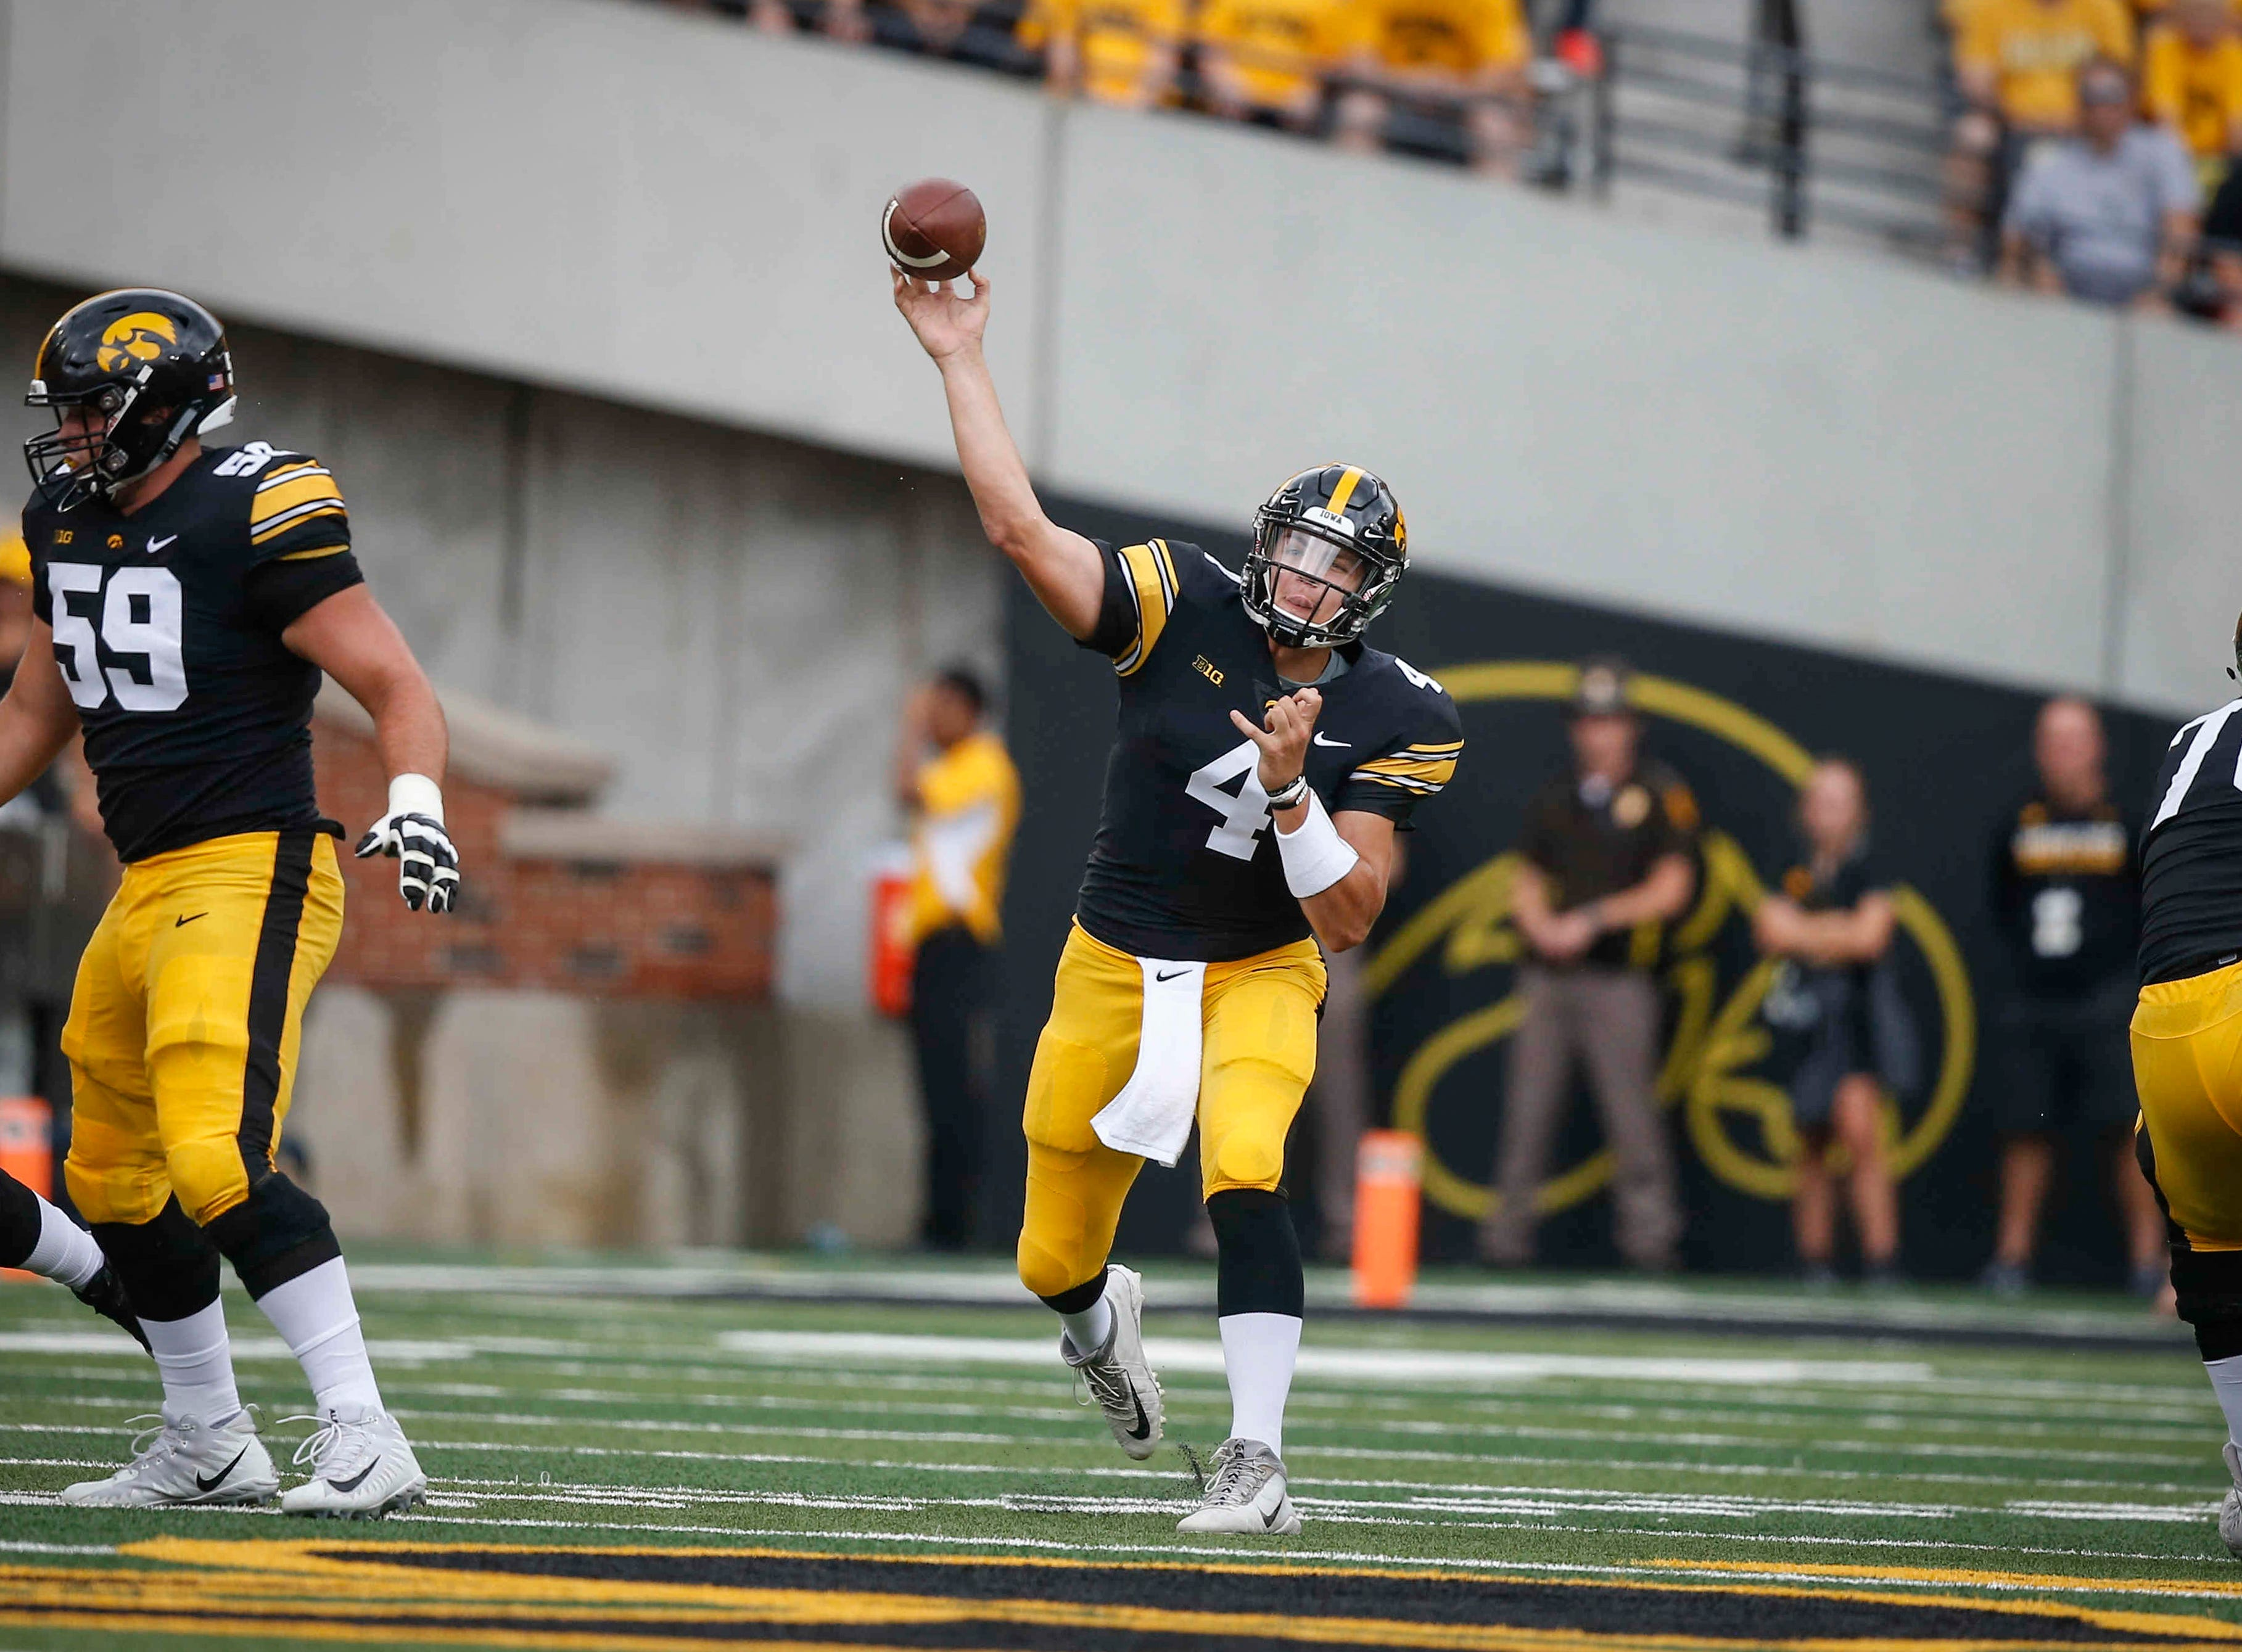 Iowa junior quarterback Nate Stanley fires a pass against Northern Illinois on Saturday, Sept. 1, 2018, at Kinnick Stadium in Iowa City.